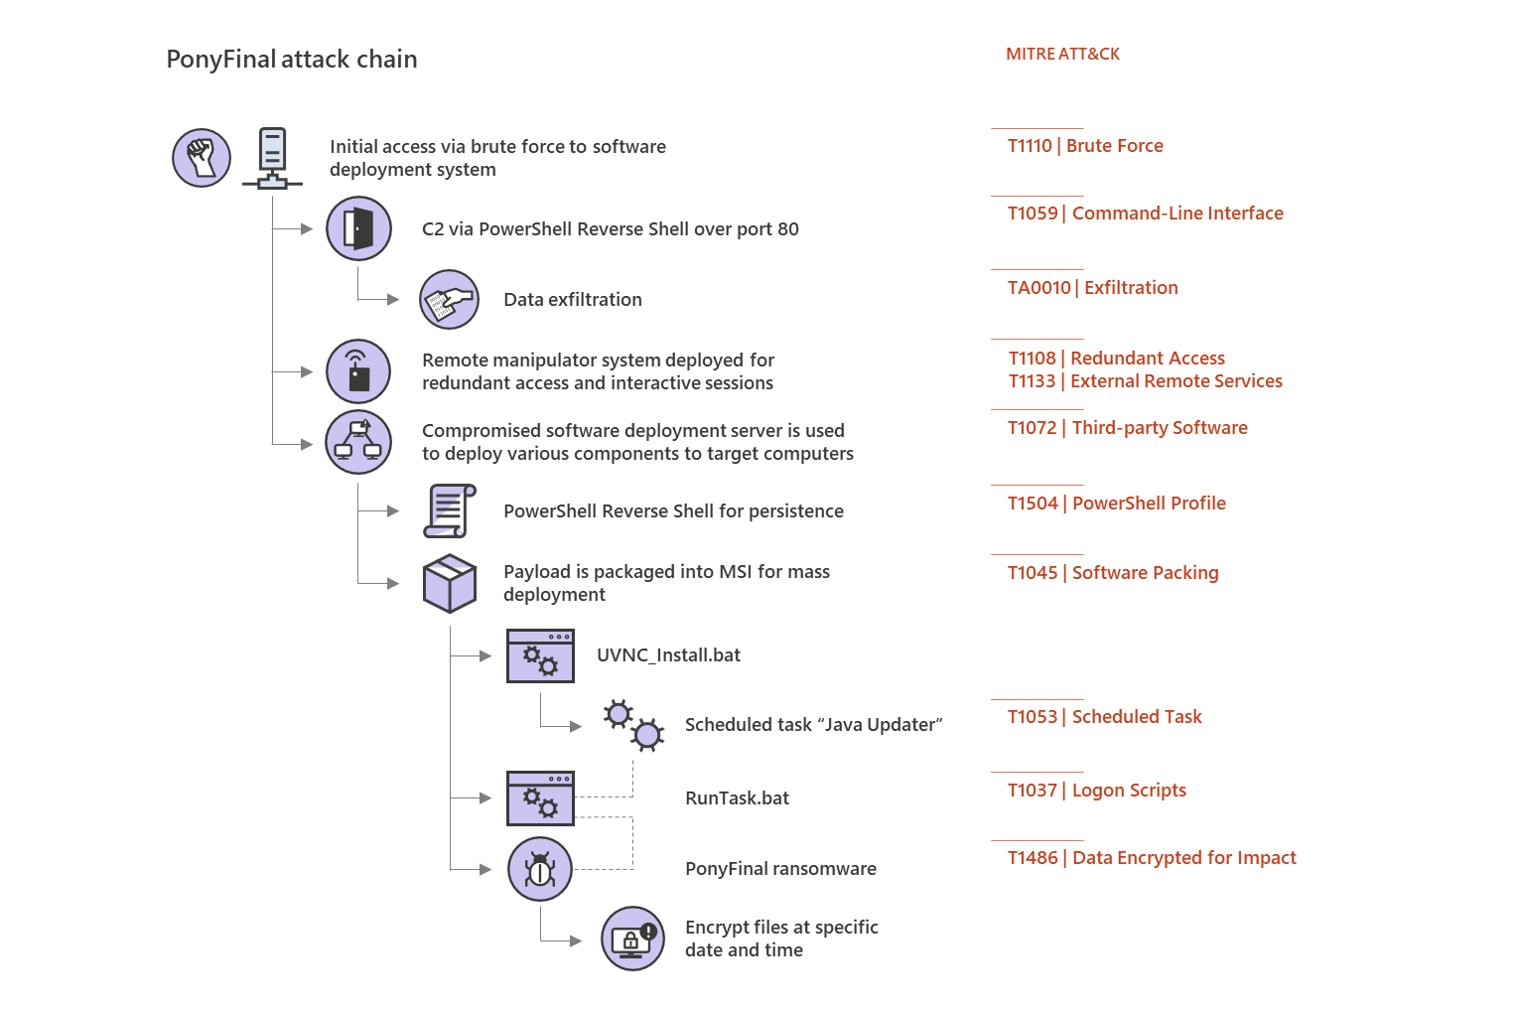 Graph of ponytail ransomware attack routine.